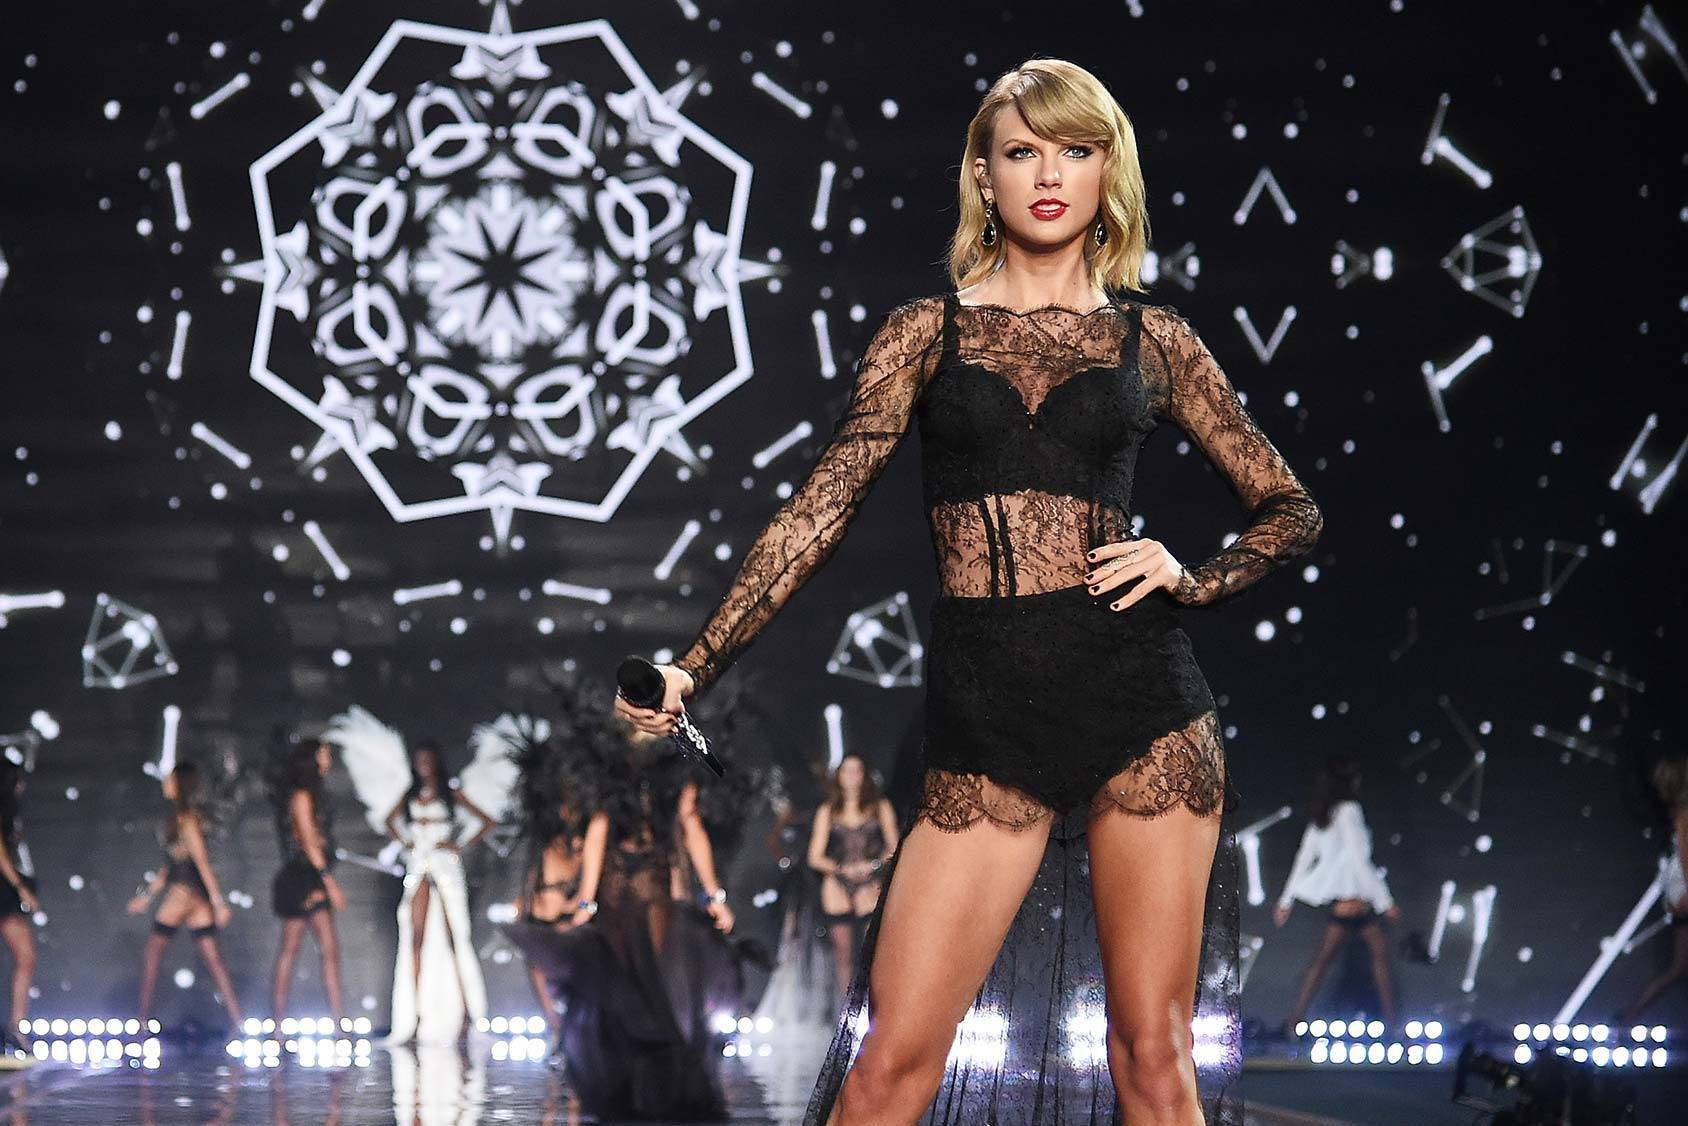 Taylor Swift at the Victoria's Secret Fashion Show 2014, Getty Images.